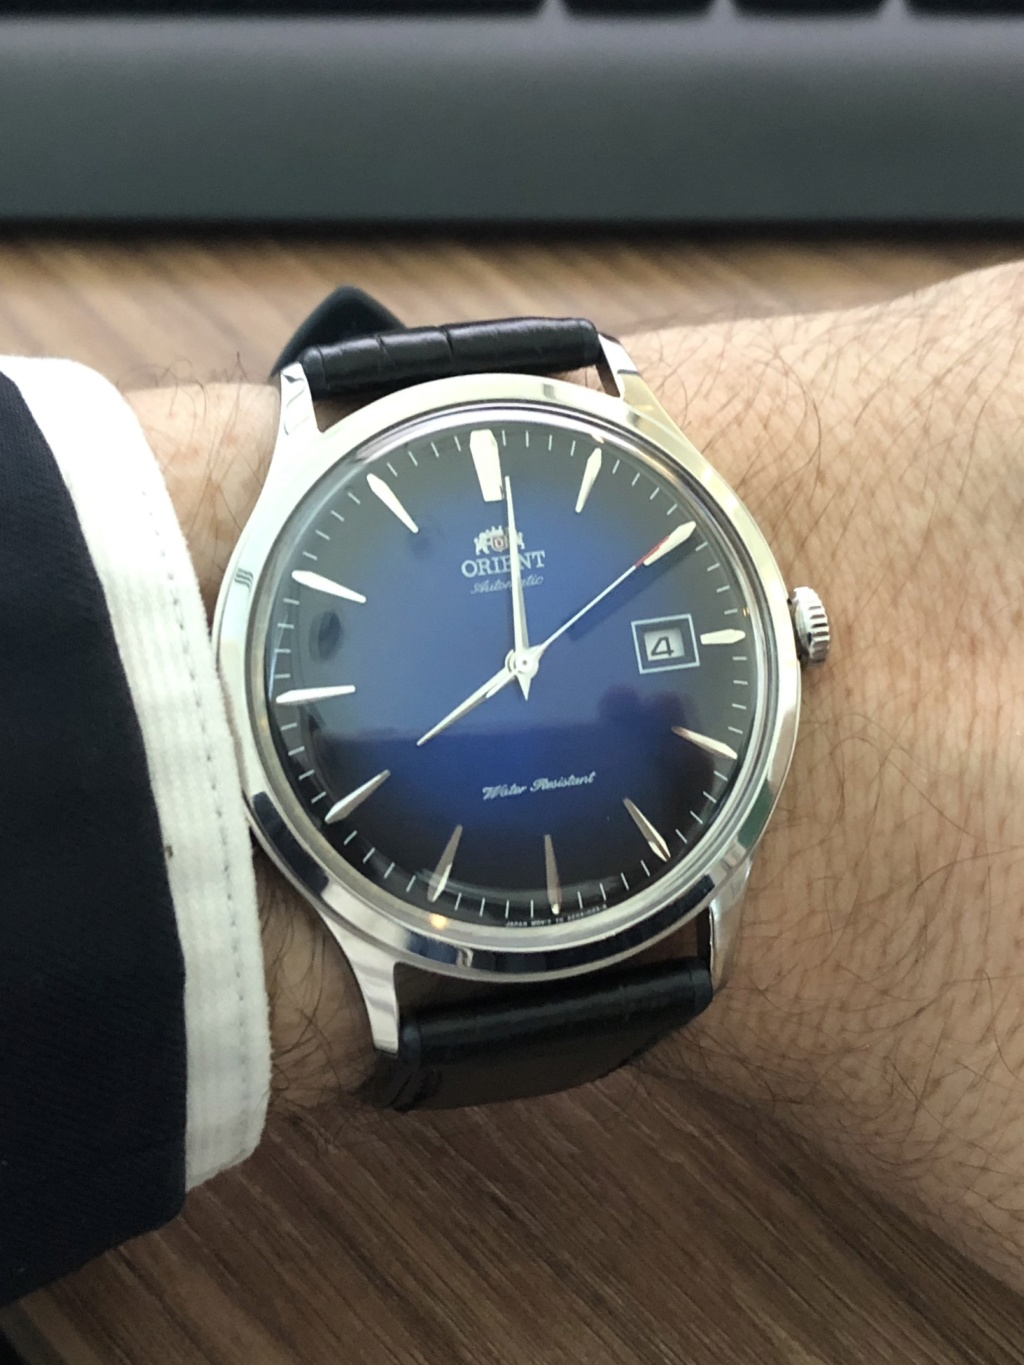 orient bambino V4 - Page 21 2c6d9b10